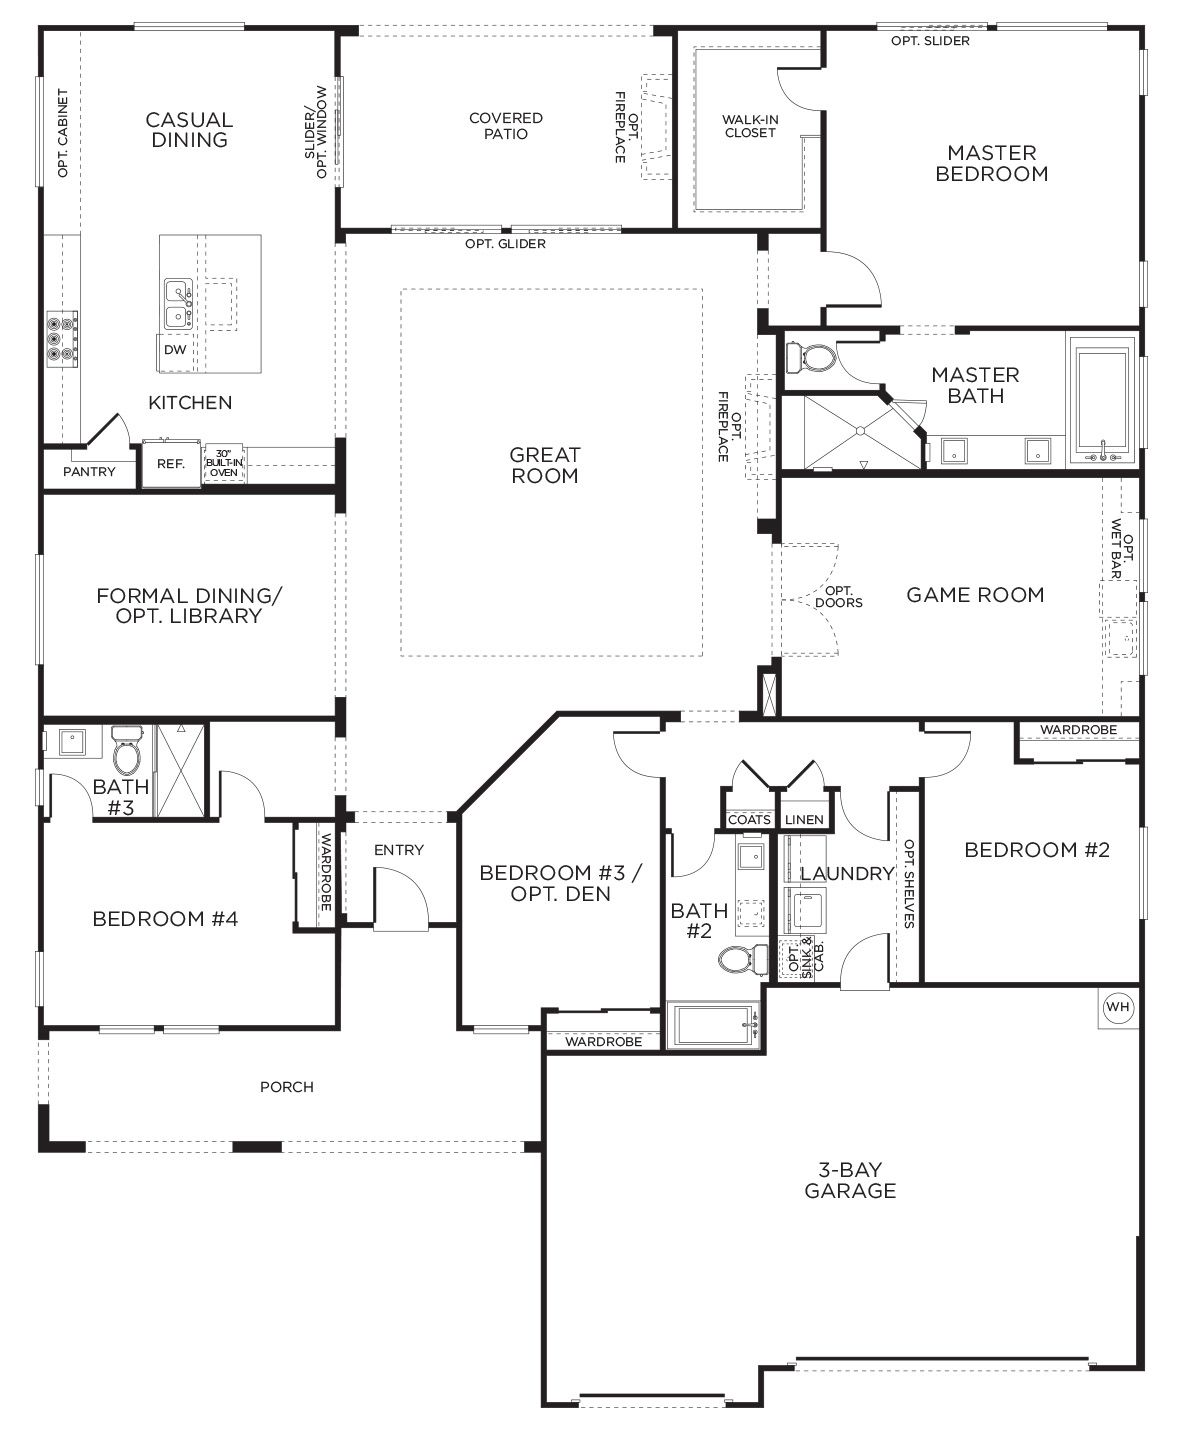 Floor Plan House Love This Layout With Extra Rooms Single Story Floor Plans One